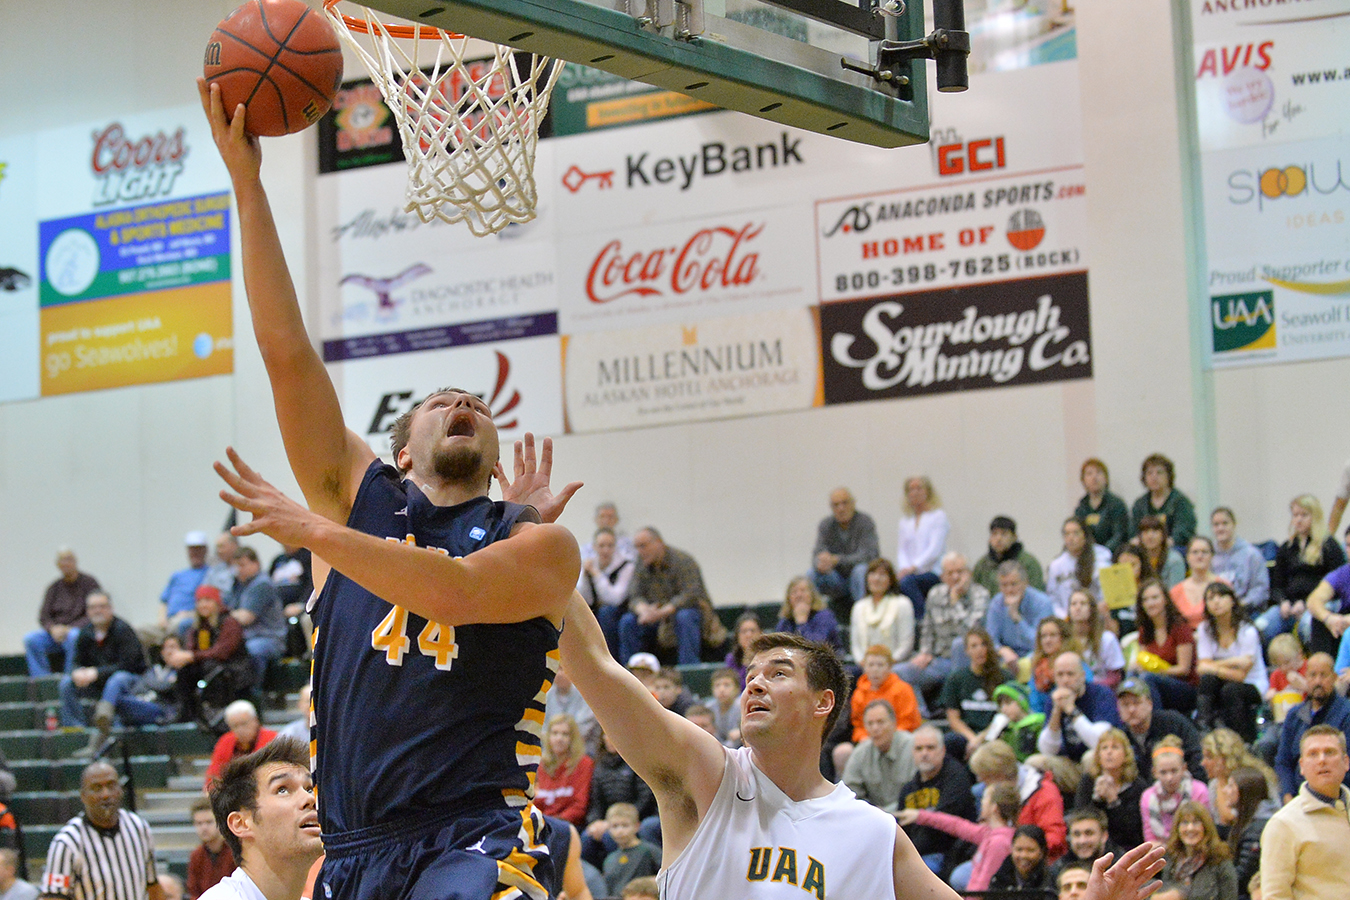 Austin Hudson (44) of Montana State Billings had a historic rebound performance last weekend (Photo by Sam Wassom)